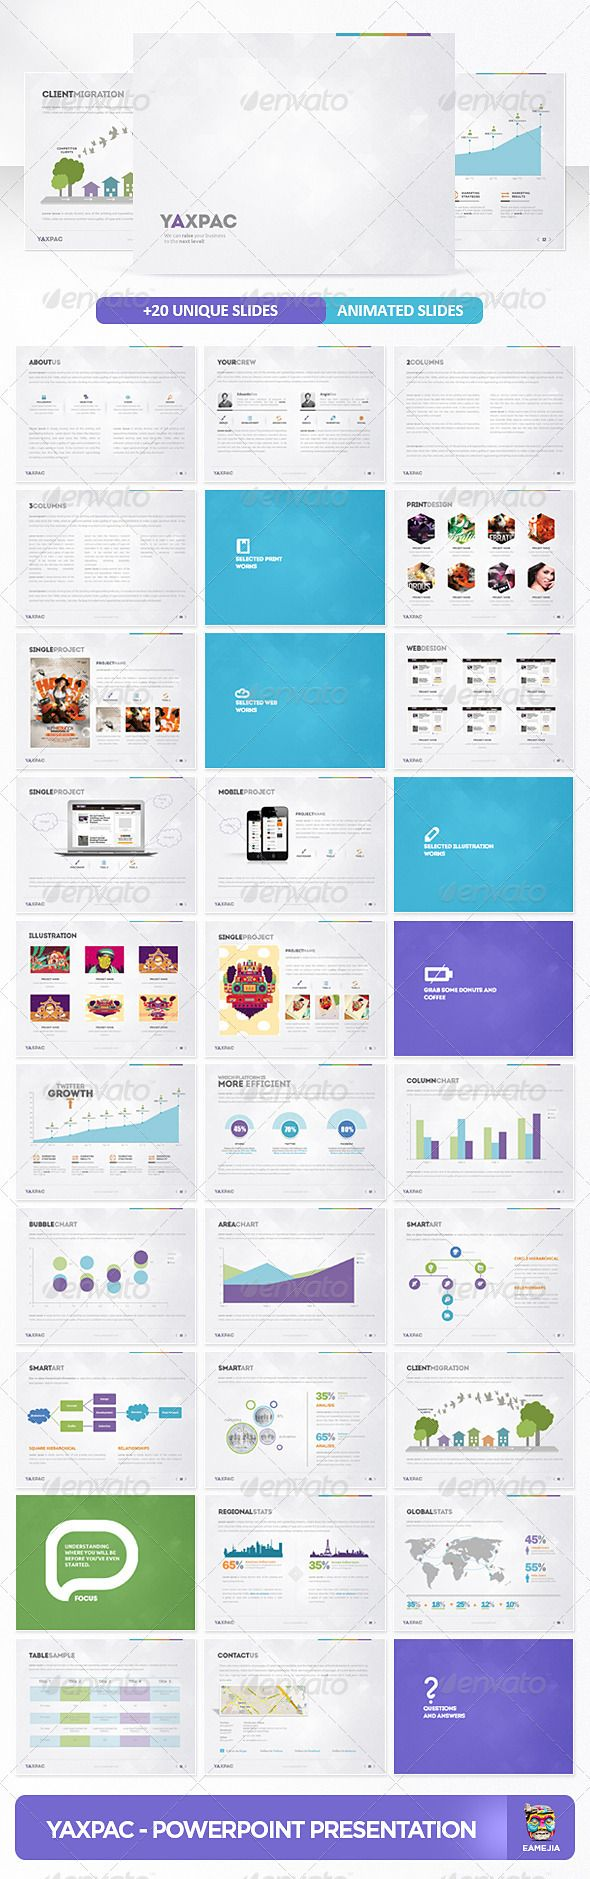 Yaxpac PowerPoint Presentation Template - GraphicRiver Item for Sale